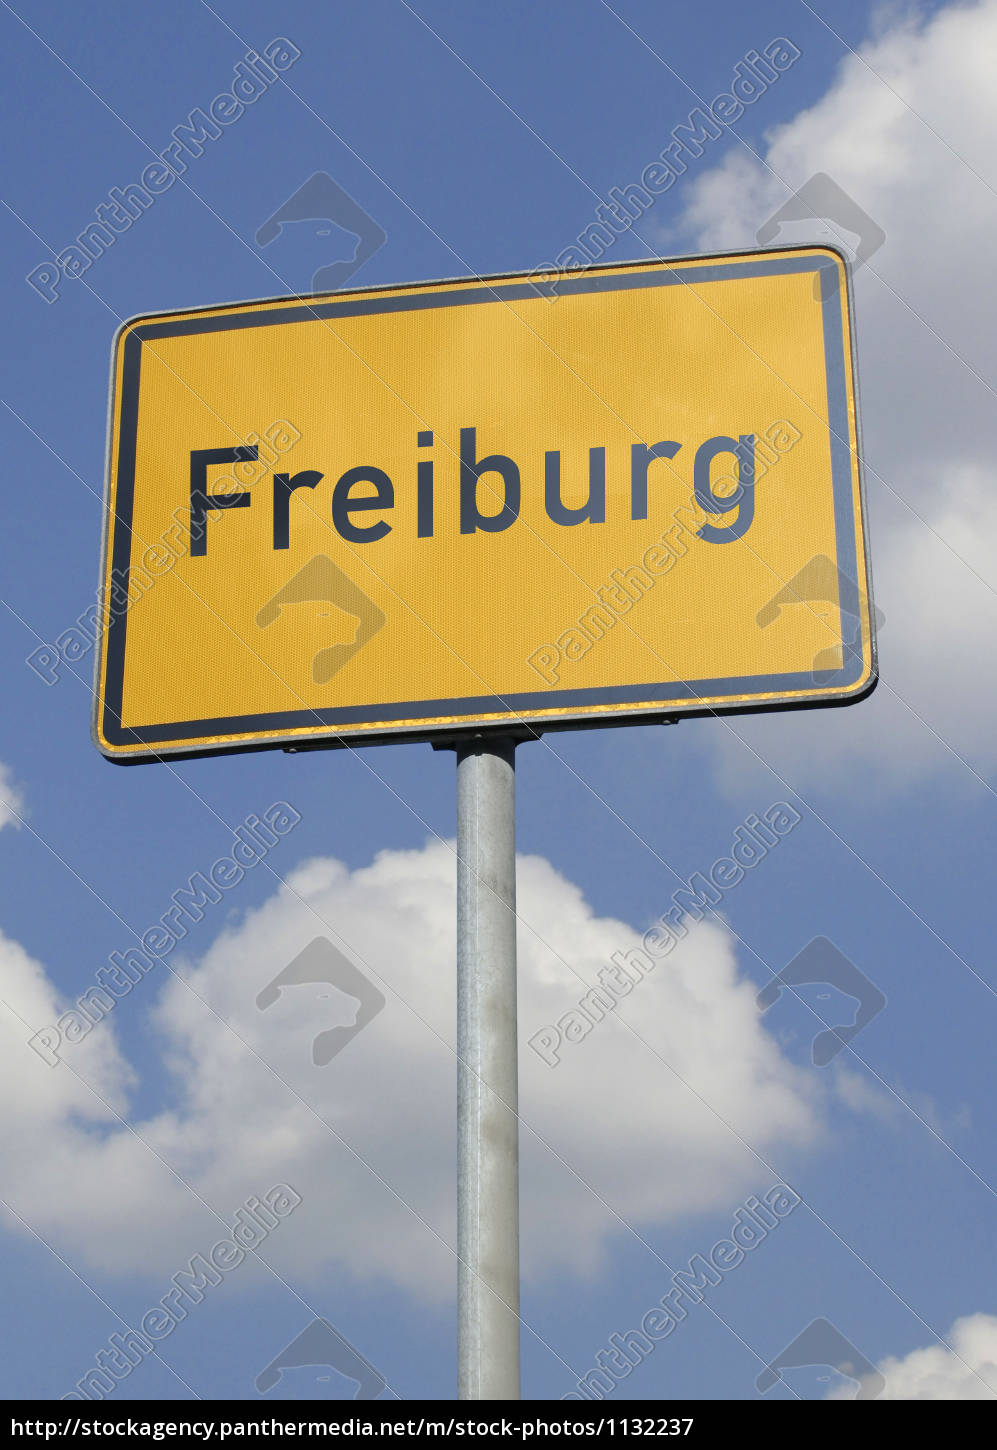 freiburg, shield - 1132237